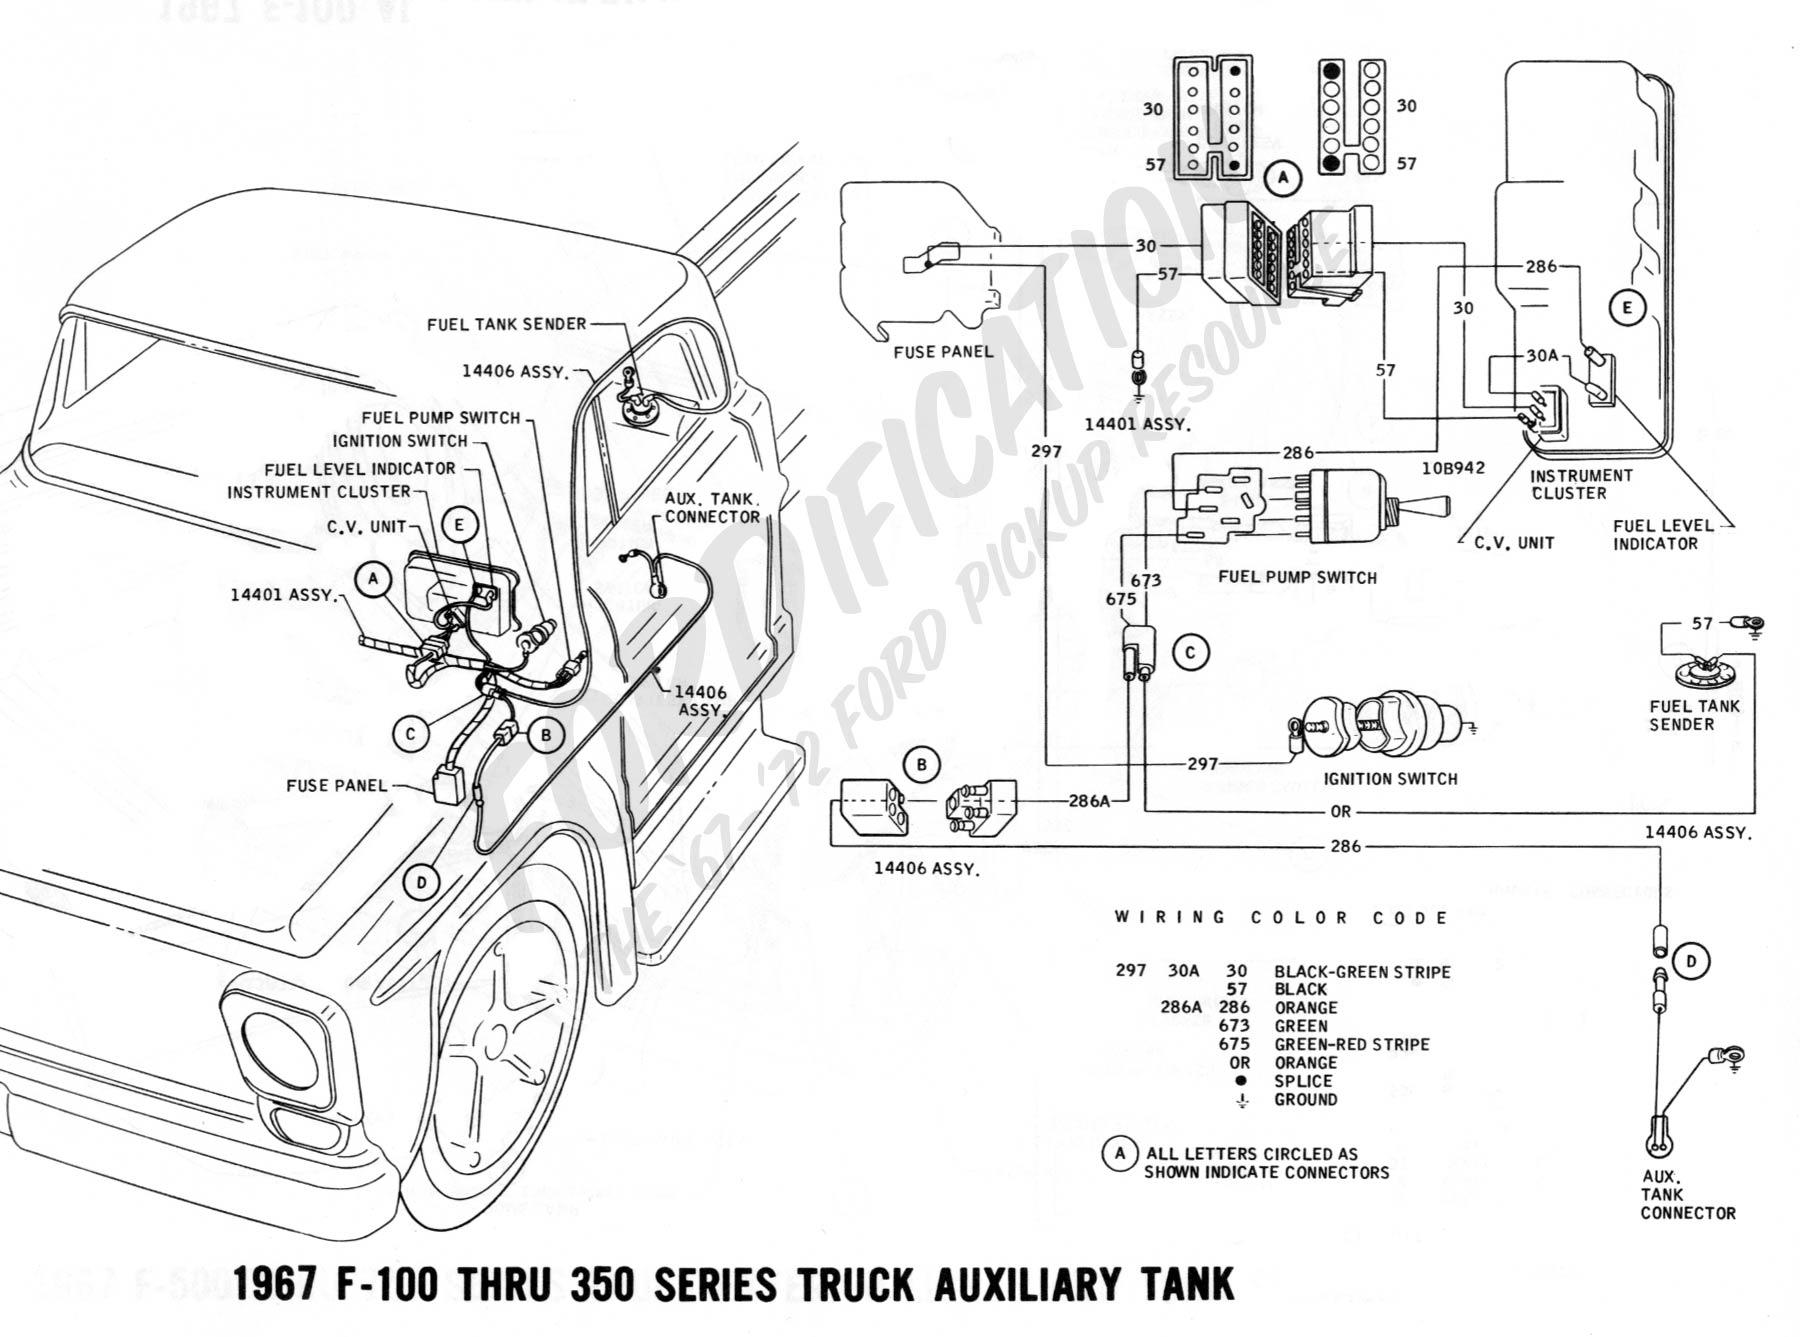 Schematics h on 1971 ford f100 ignition wiring diagram